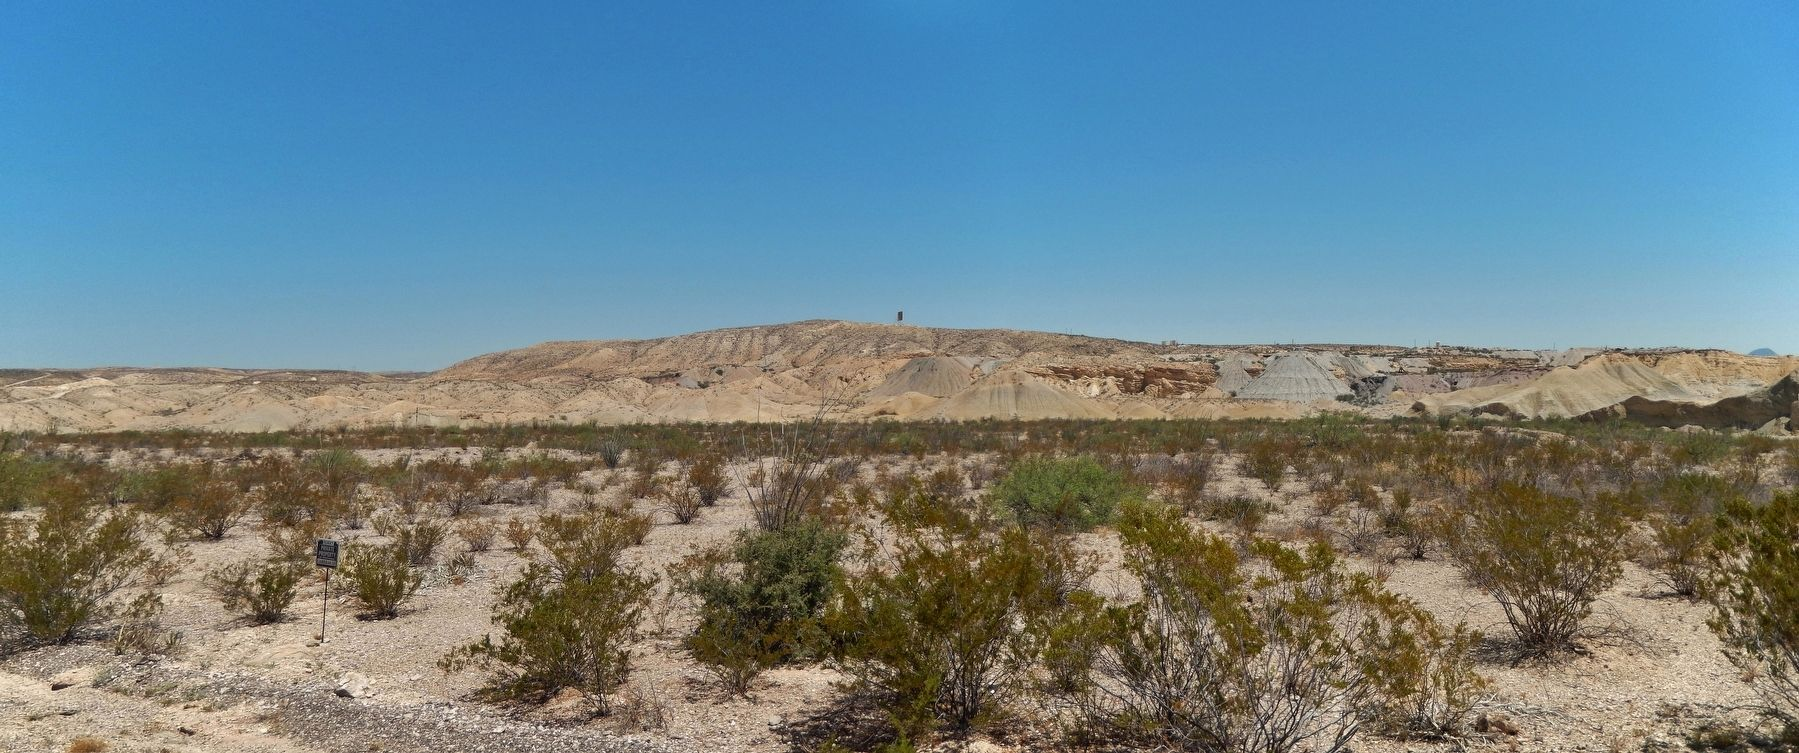 Terlingua Landscape (<i>view from marker</i>) image. Click for full size.